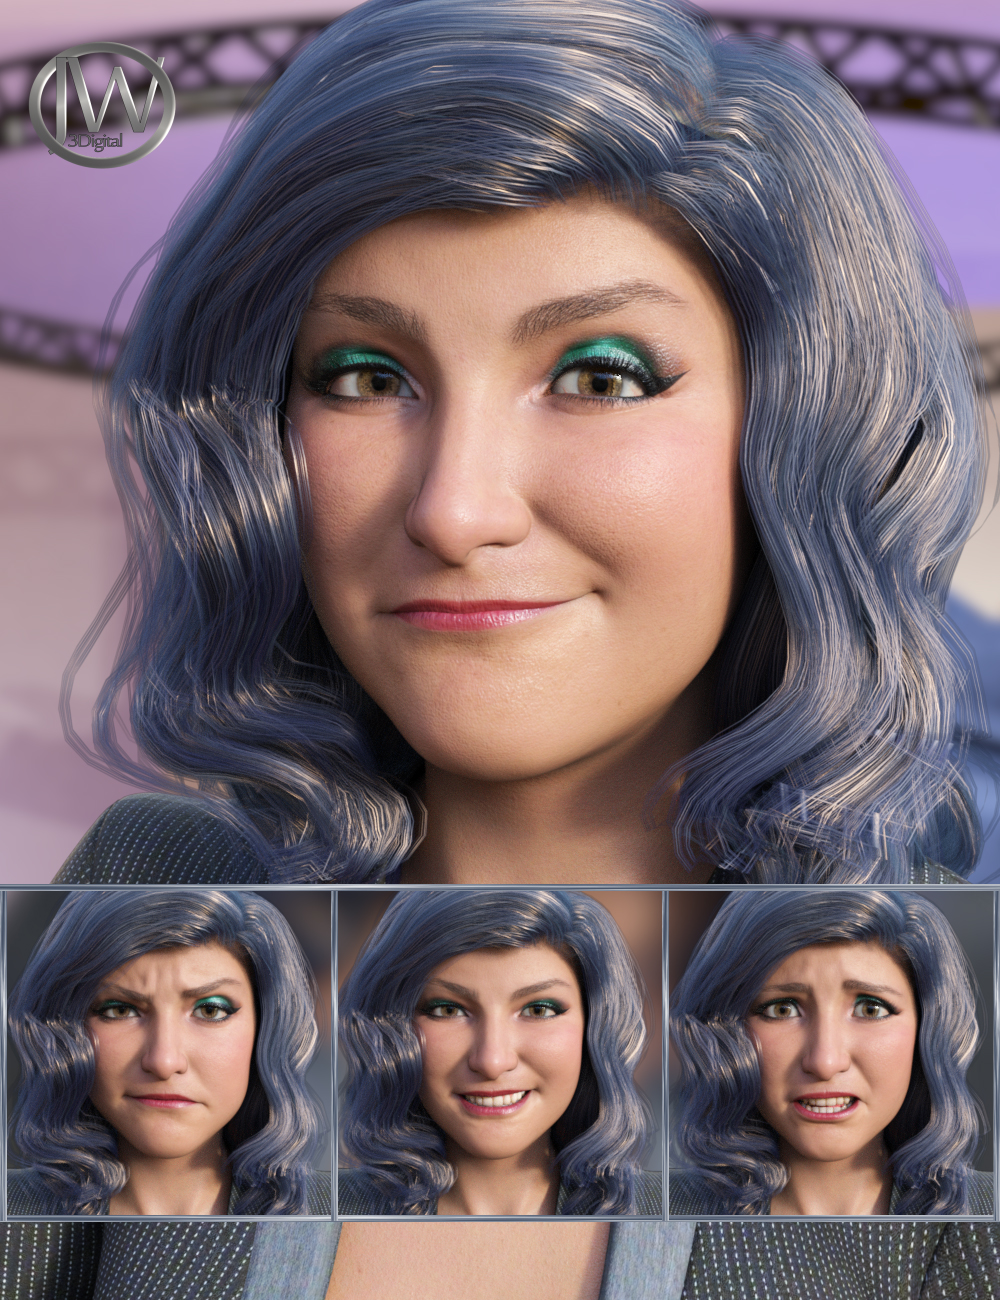 The Journalist - Expressions for Genesis 8.1 Female and Brooke 8.1 by: JWolf, 3D Models by Daz 3D